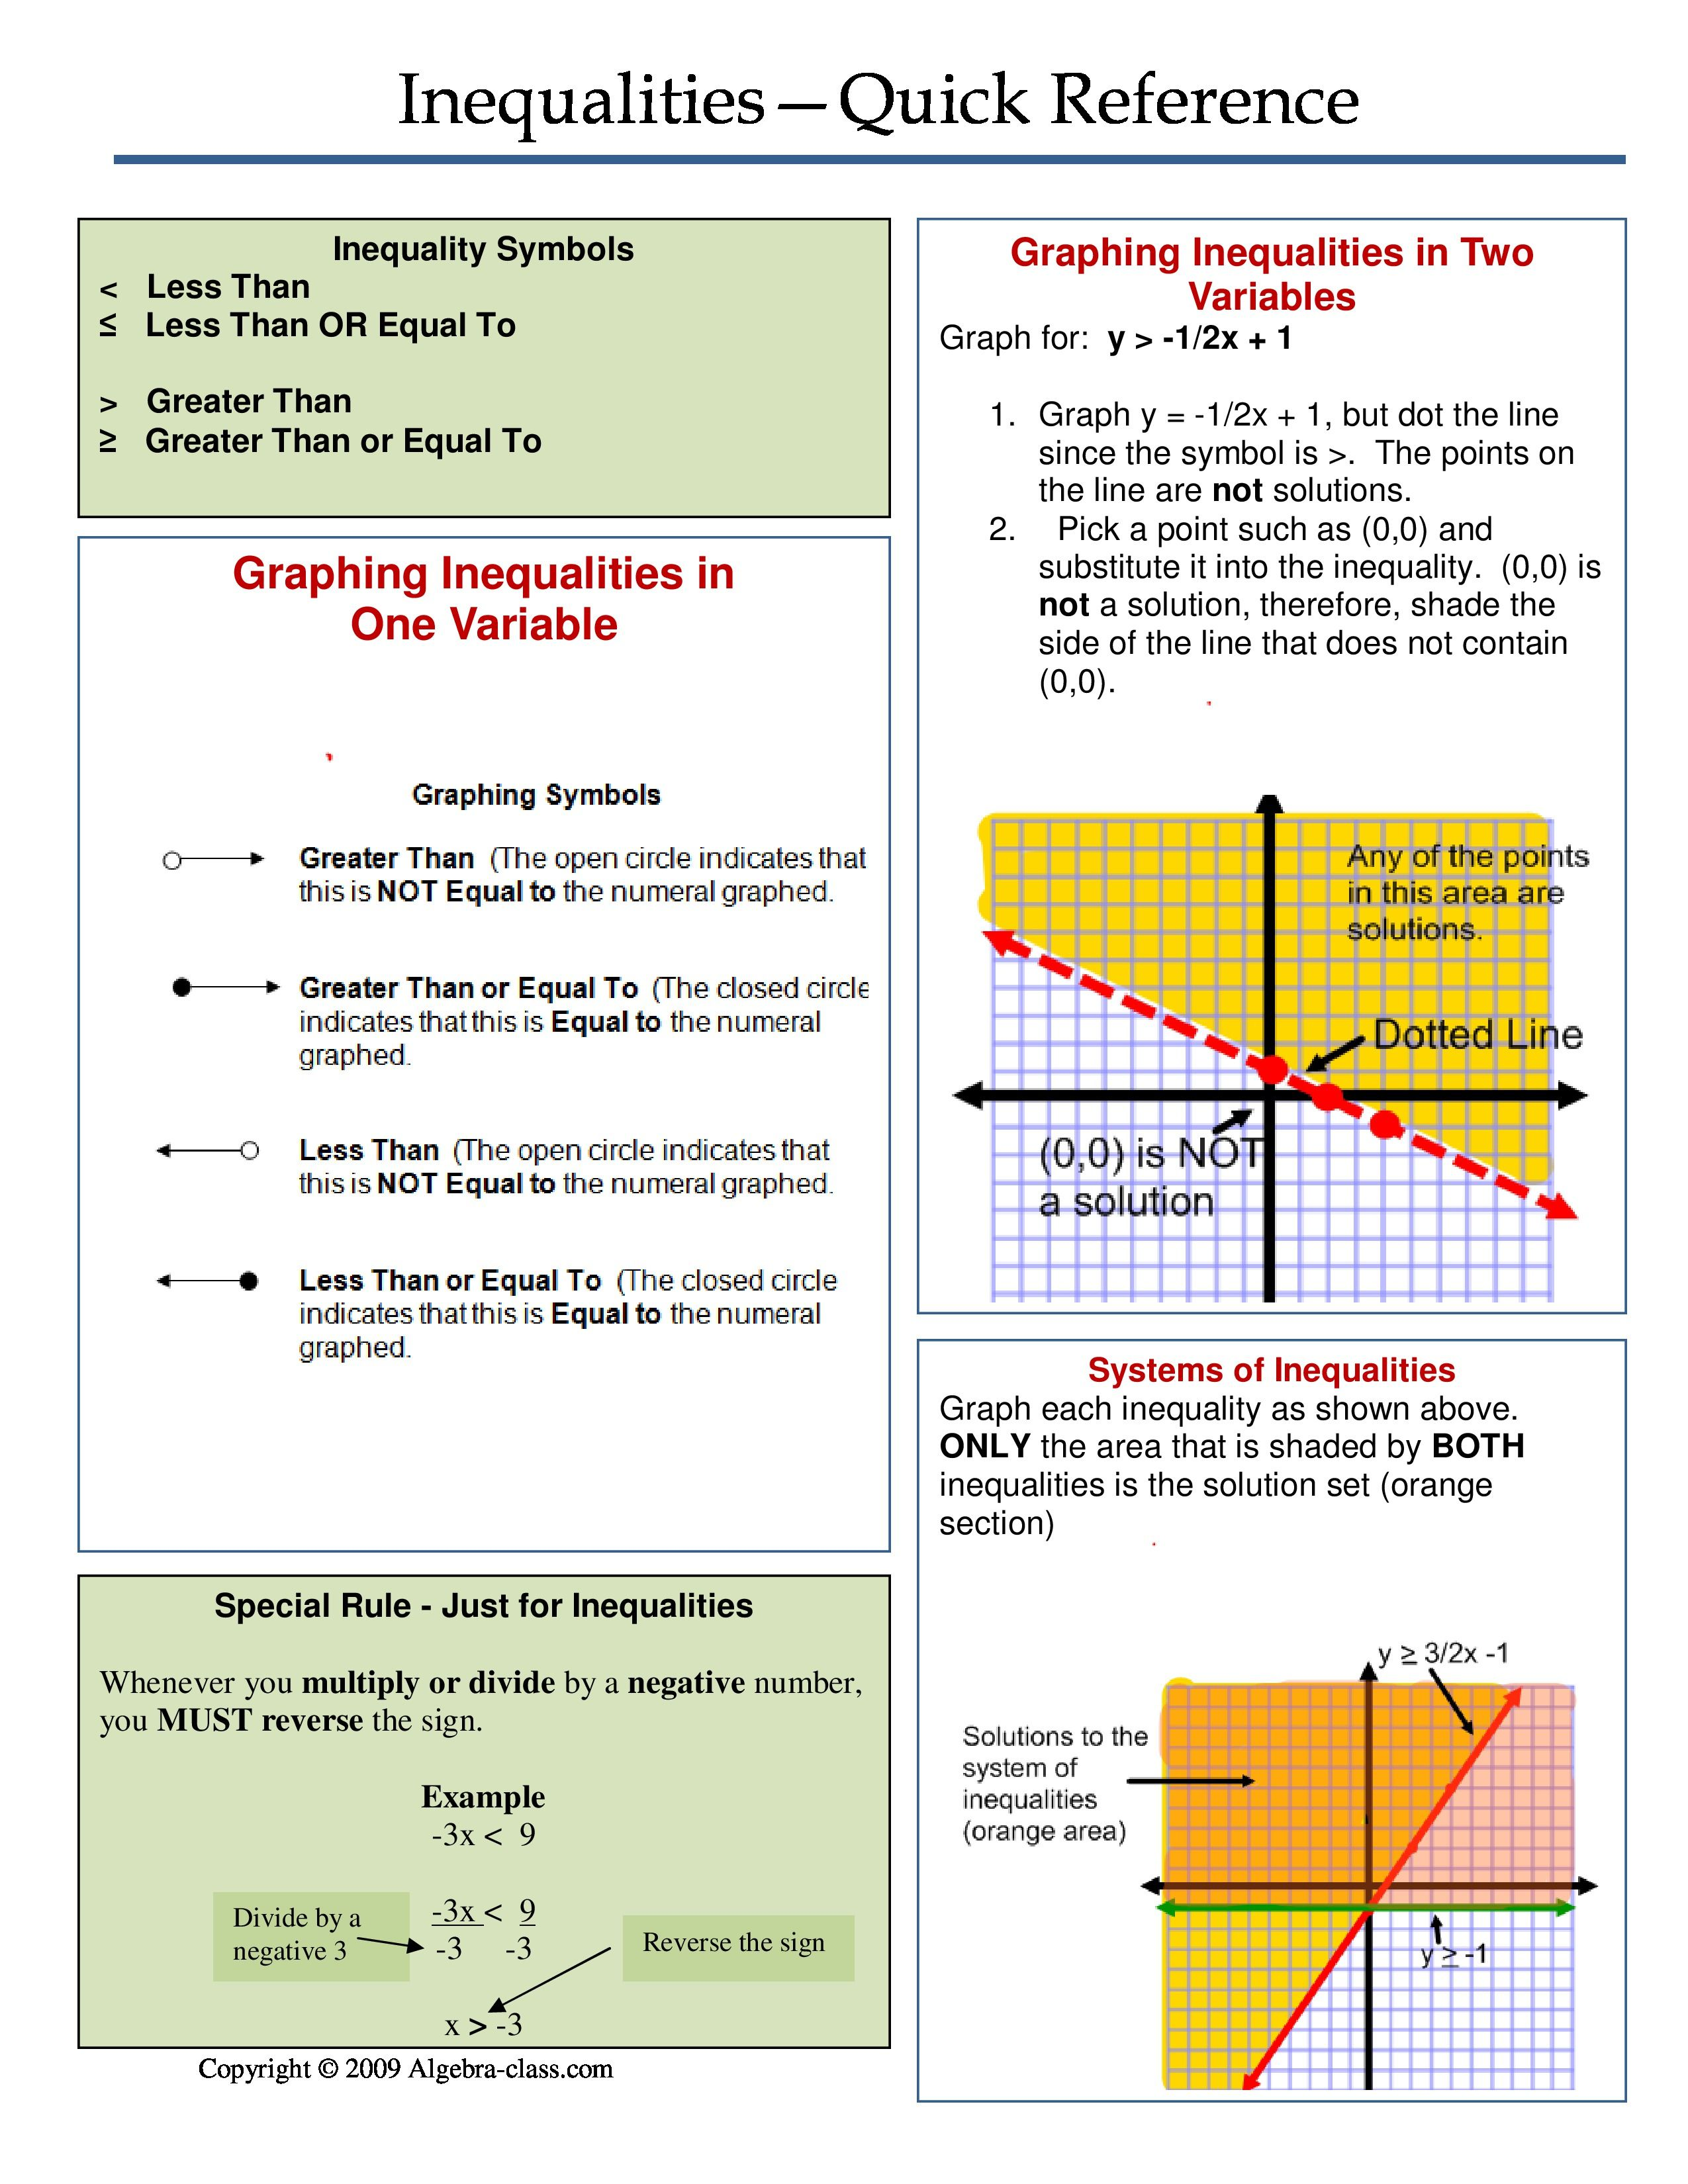 One Page Notes Worksheet For Inequalities Unit I Like The Inclusiveness Of The Notes Maybe Use This As A School Algebra Graphing Inequalities College Algebra